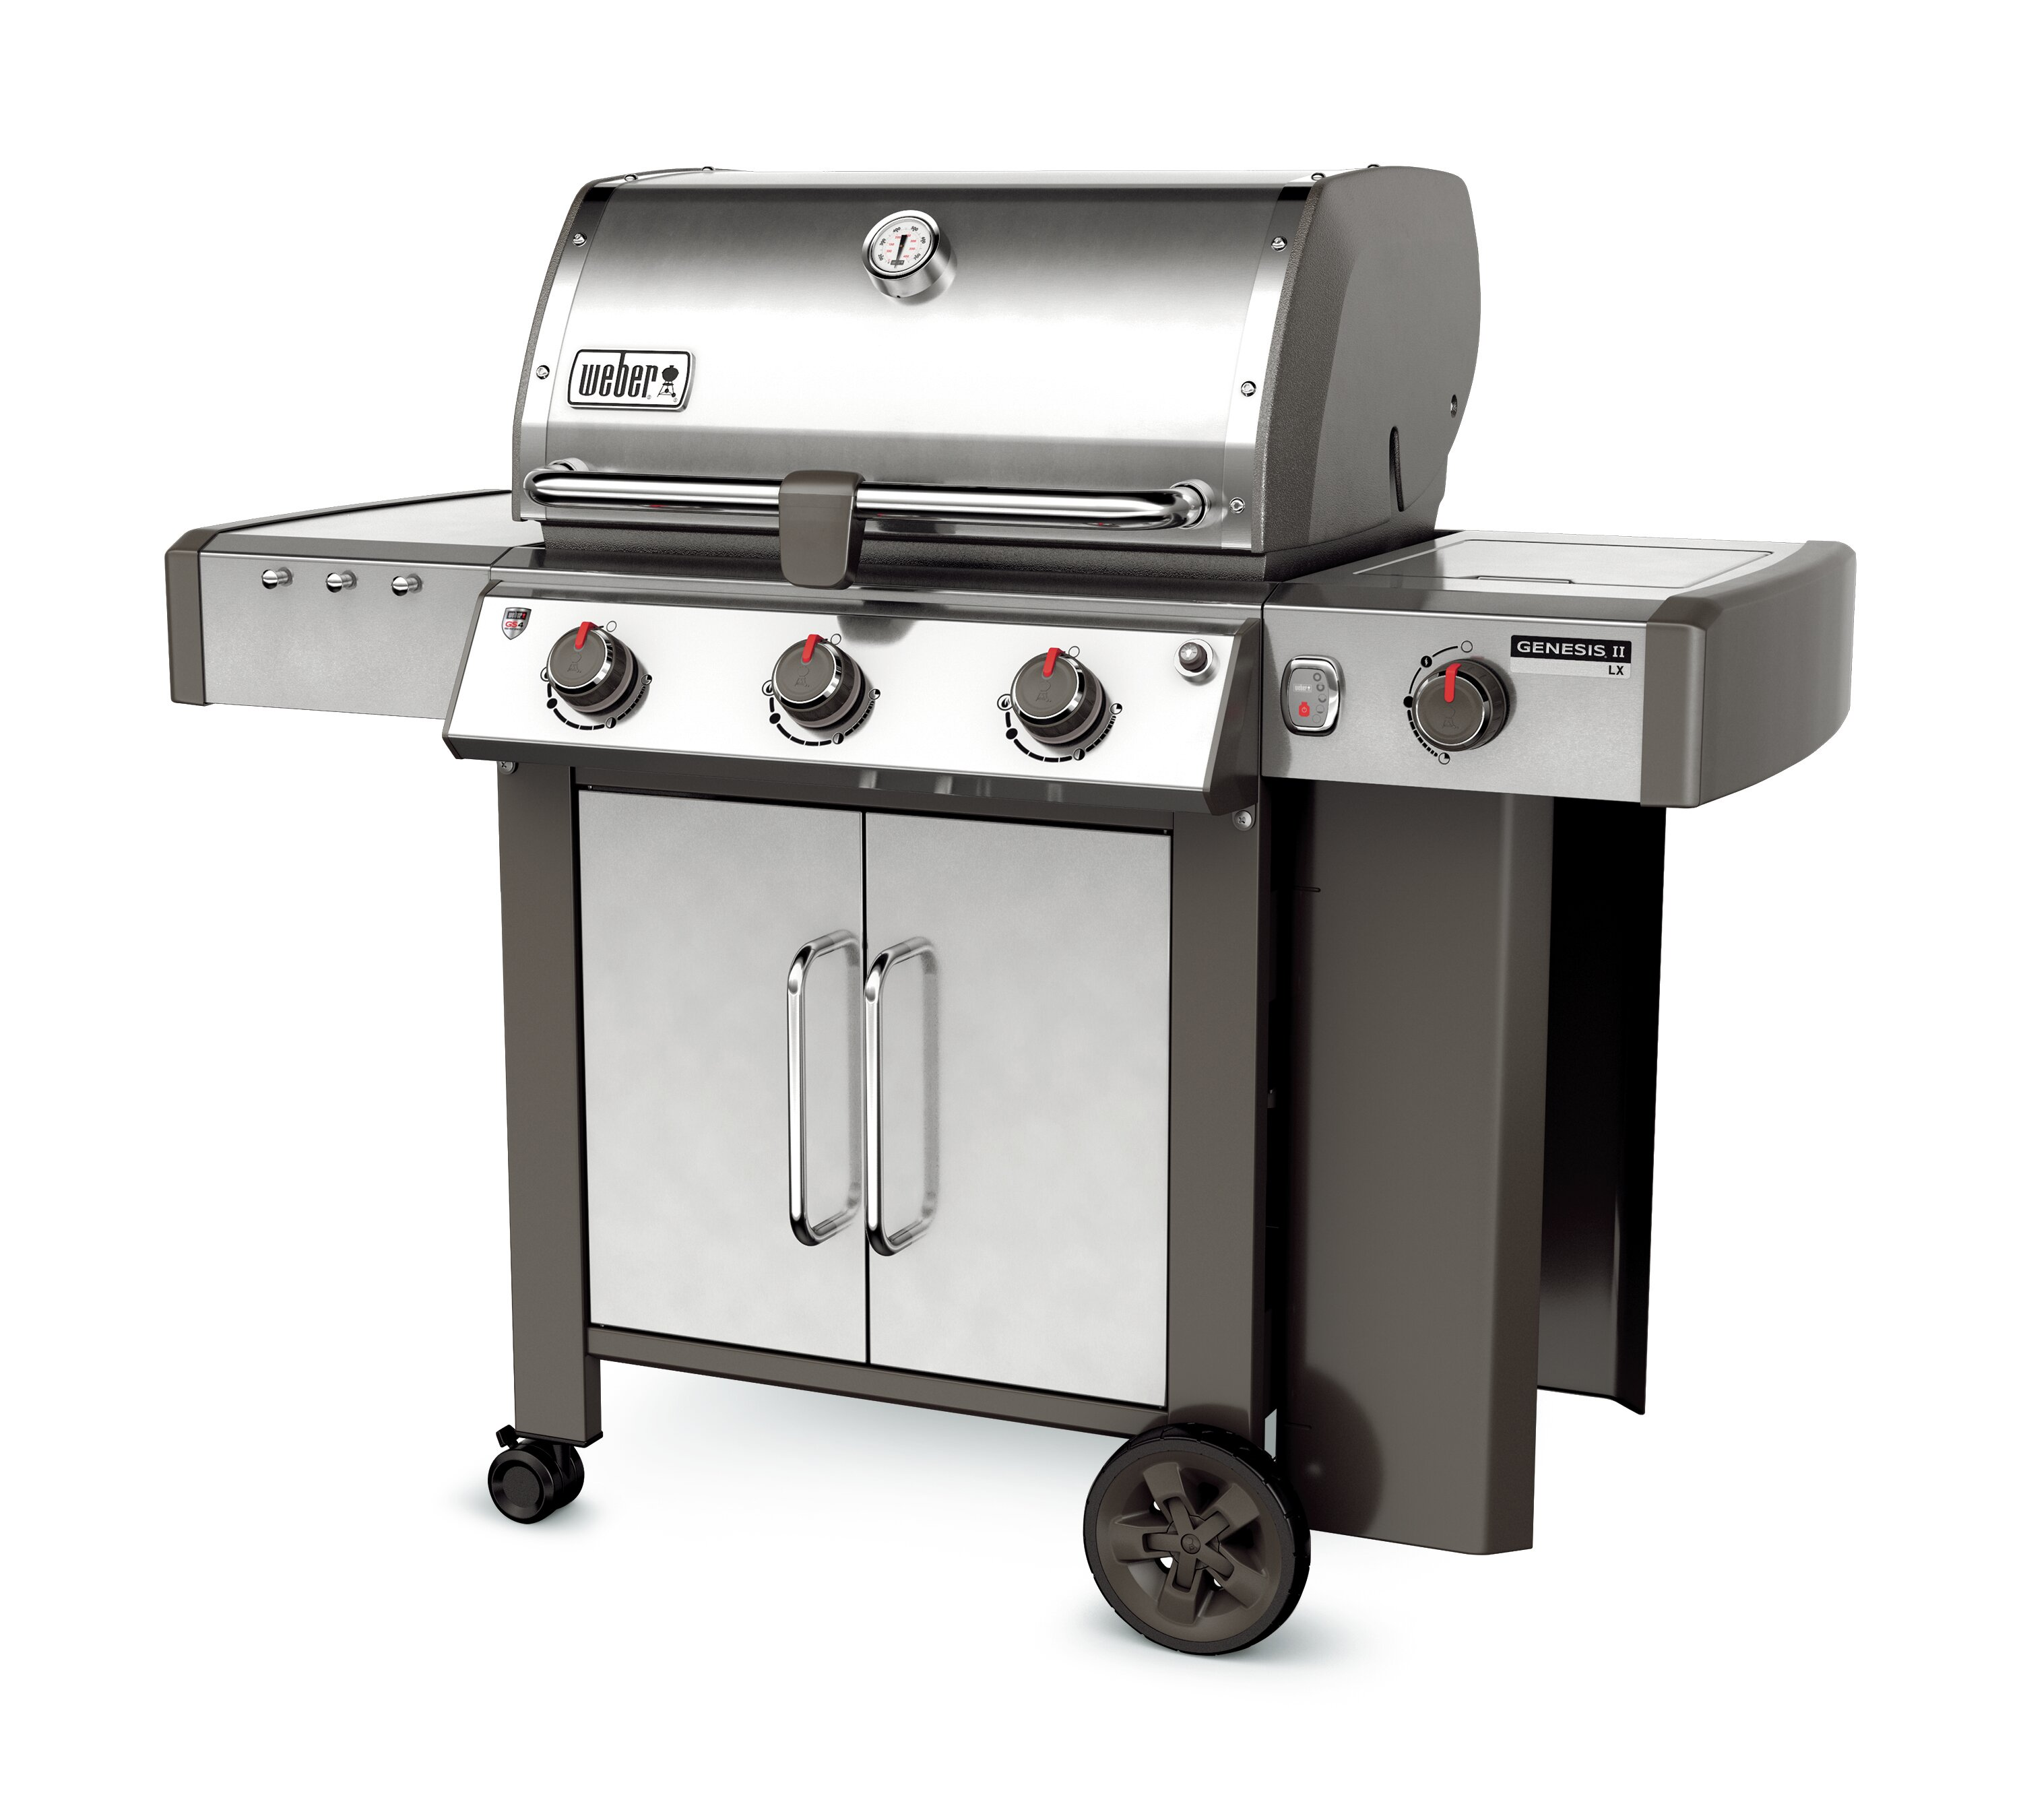 Weber Genesis II LX S 340 3 Burner Propane Gas Grill With Side Burner U0026  Reviews | Wayfair